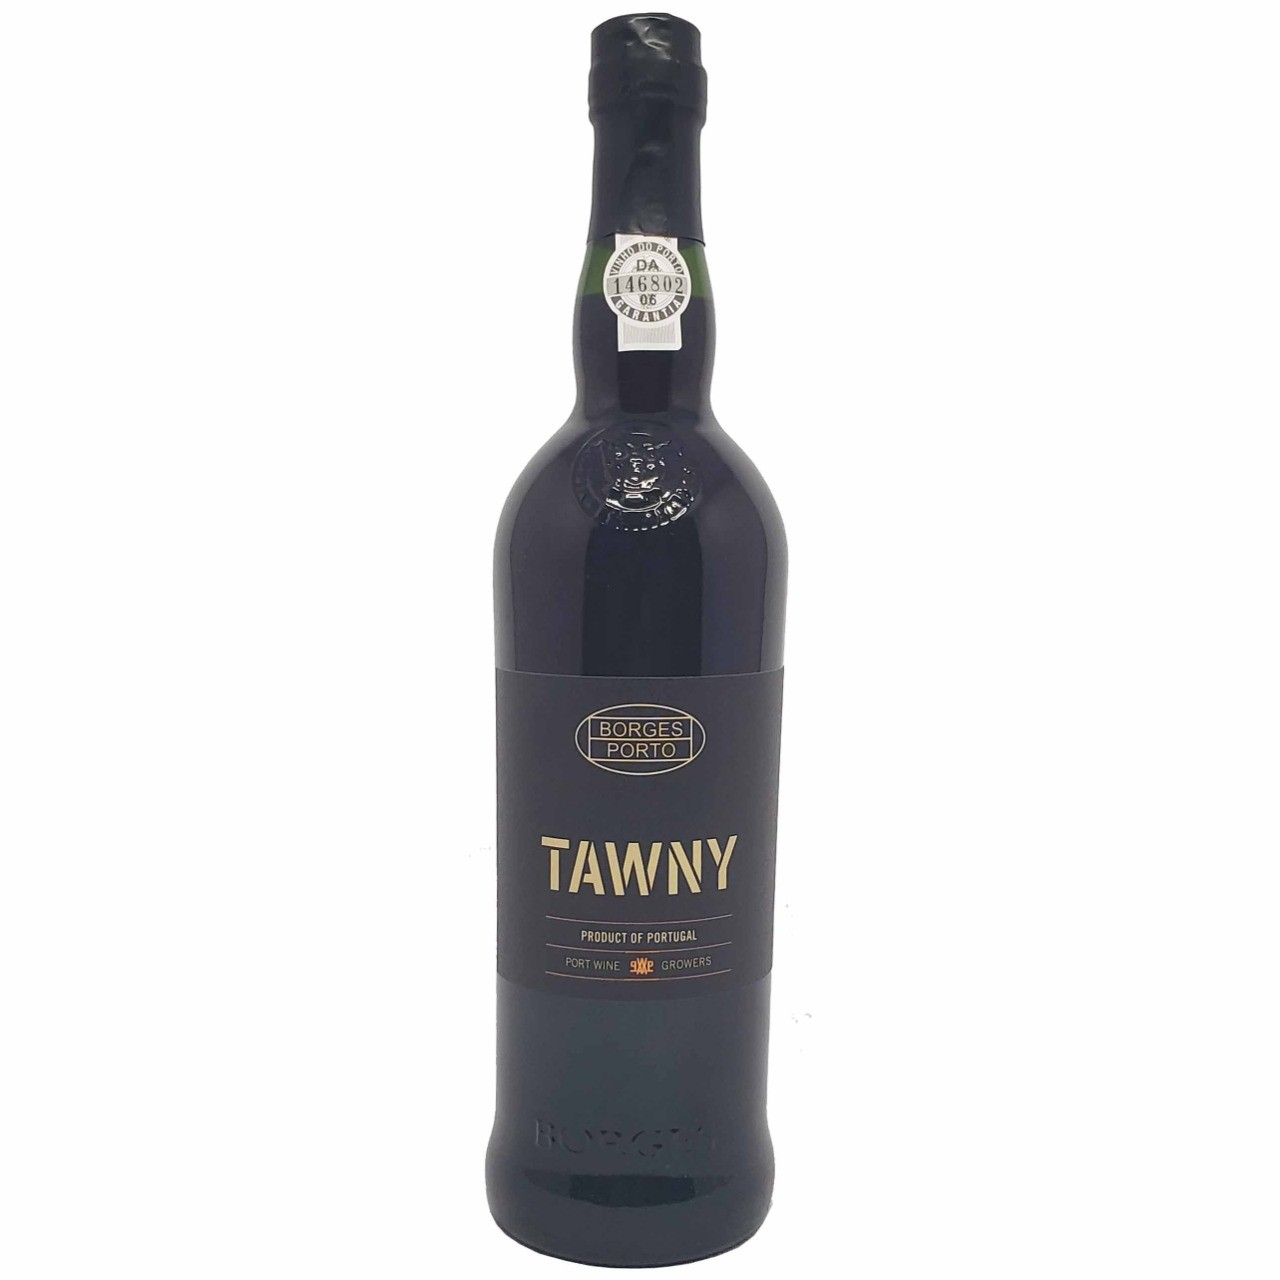 Vinho do Porto Borges Porto Tawny - 750ml -